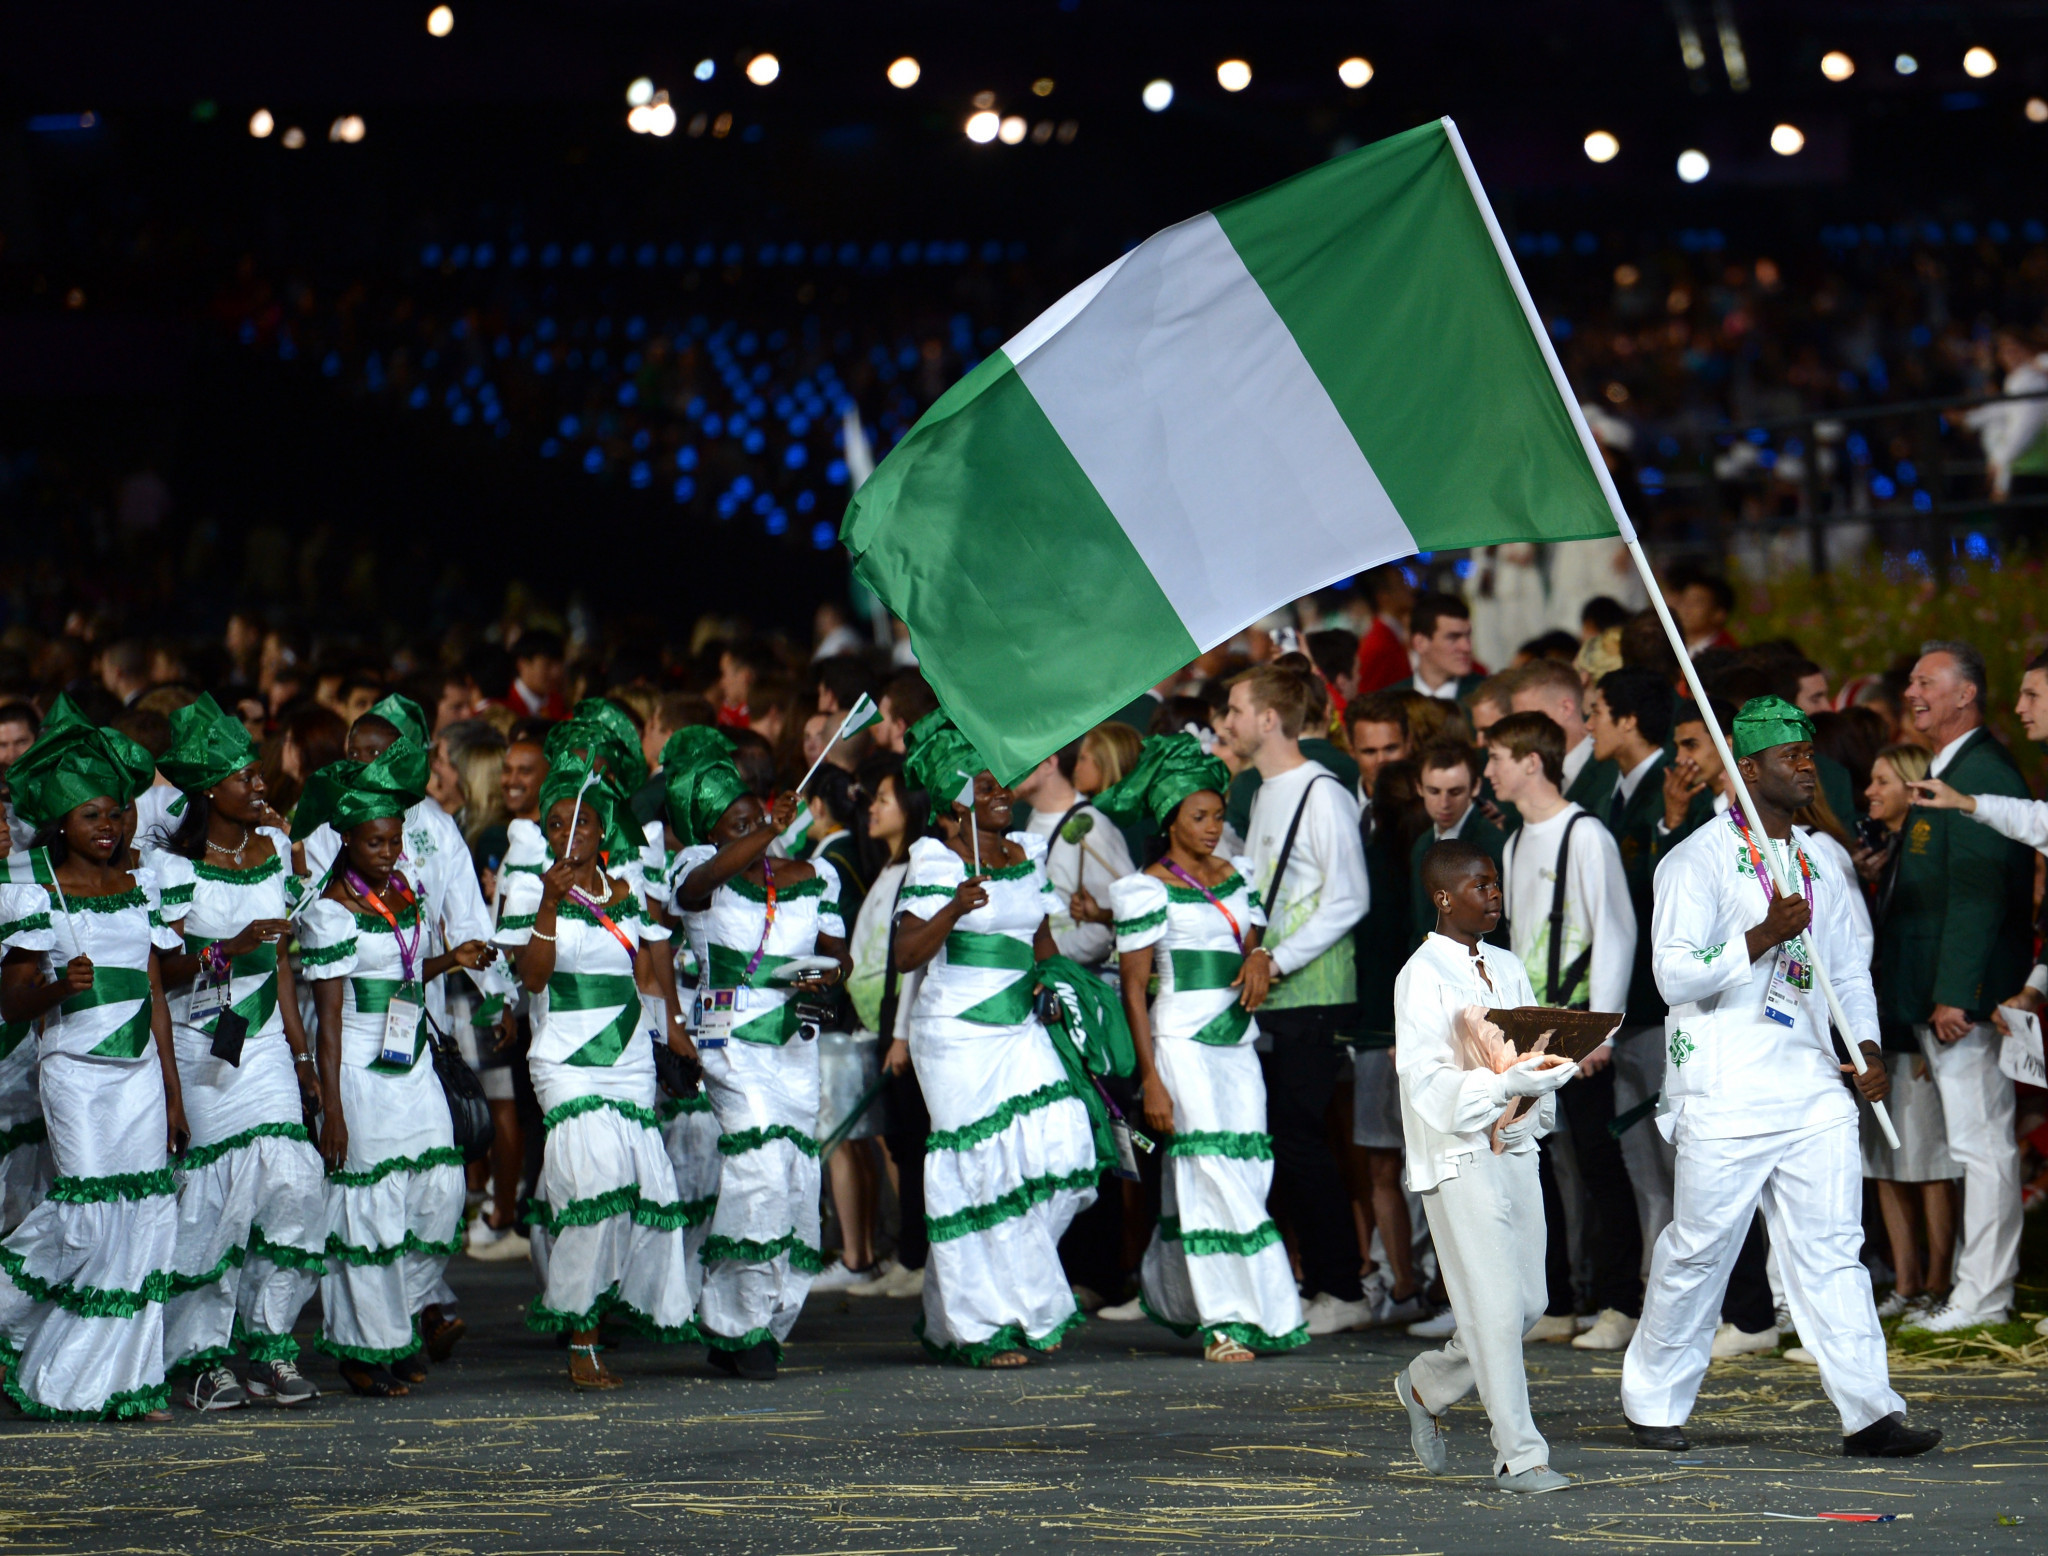 Nigeria has been holding training camps for athletes bound for Tokyo 2020 ©Getty Images